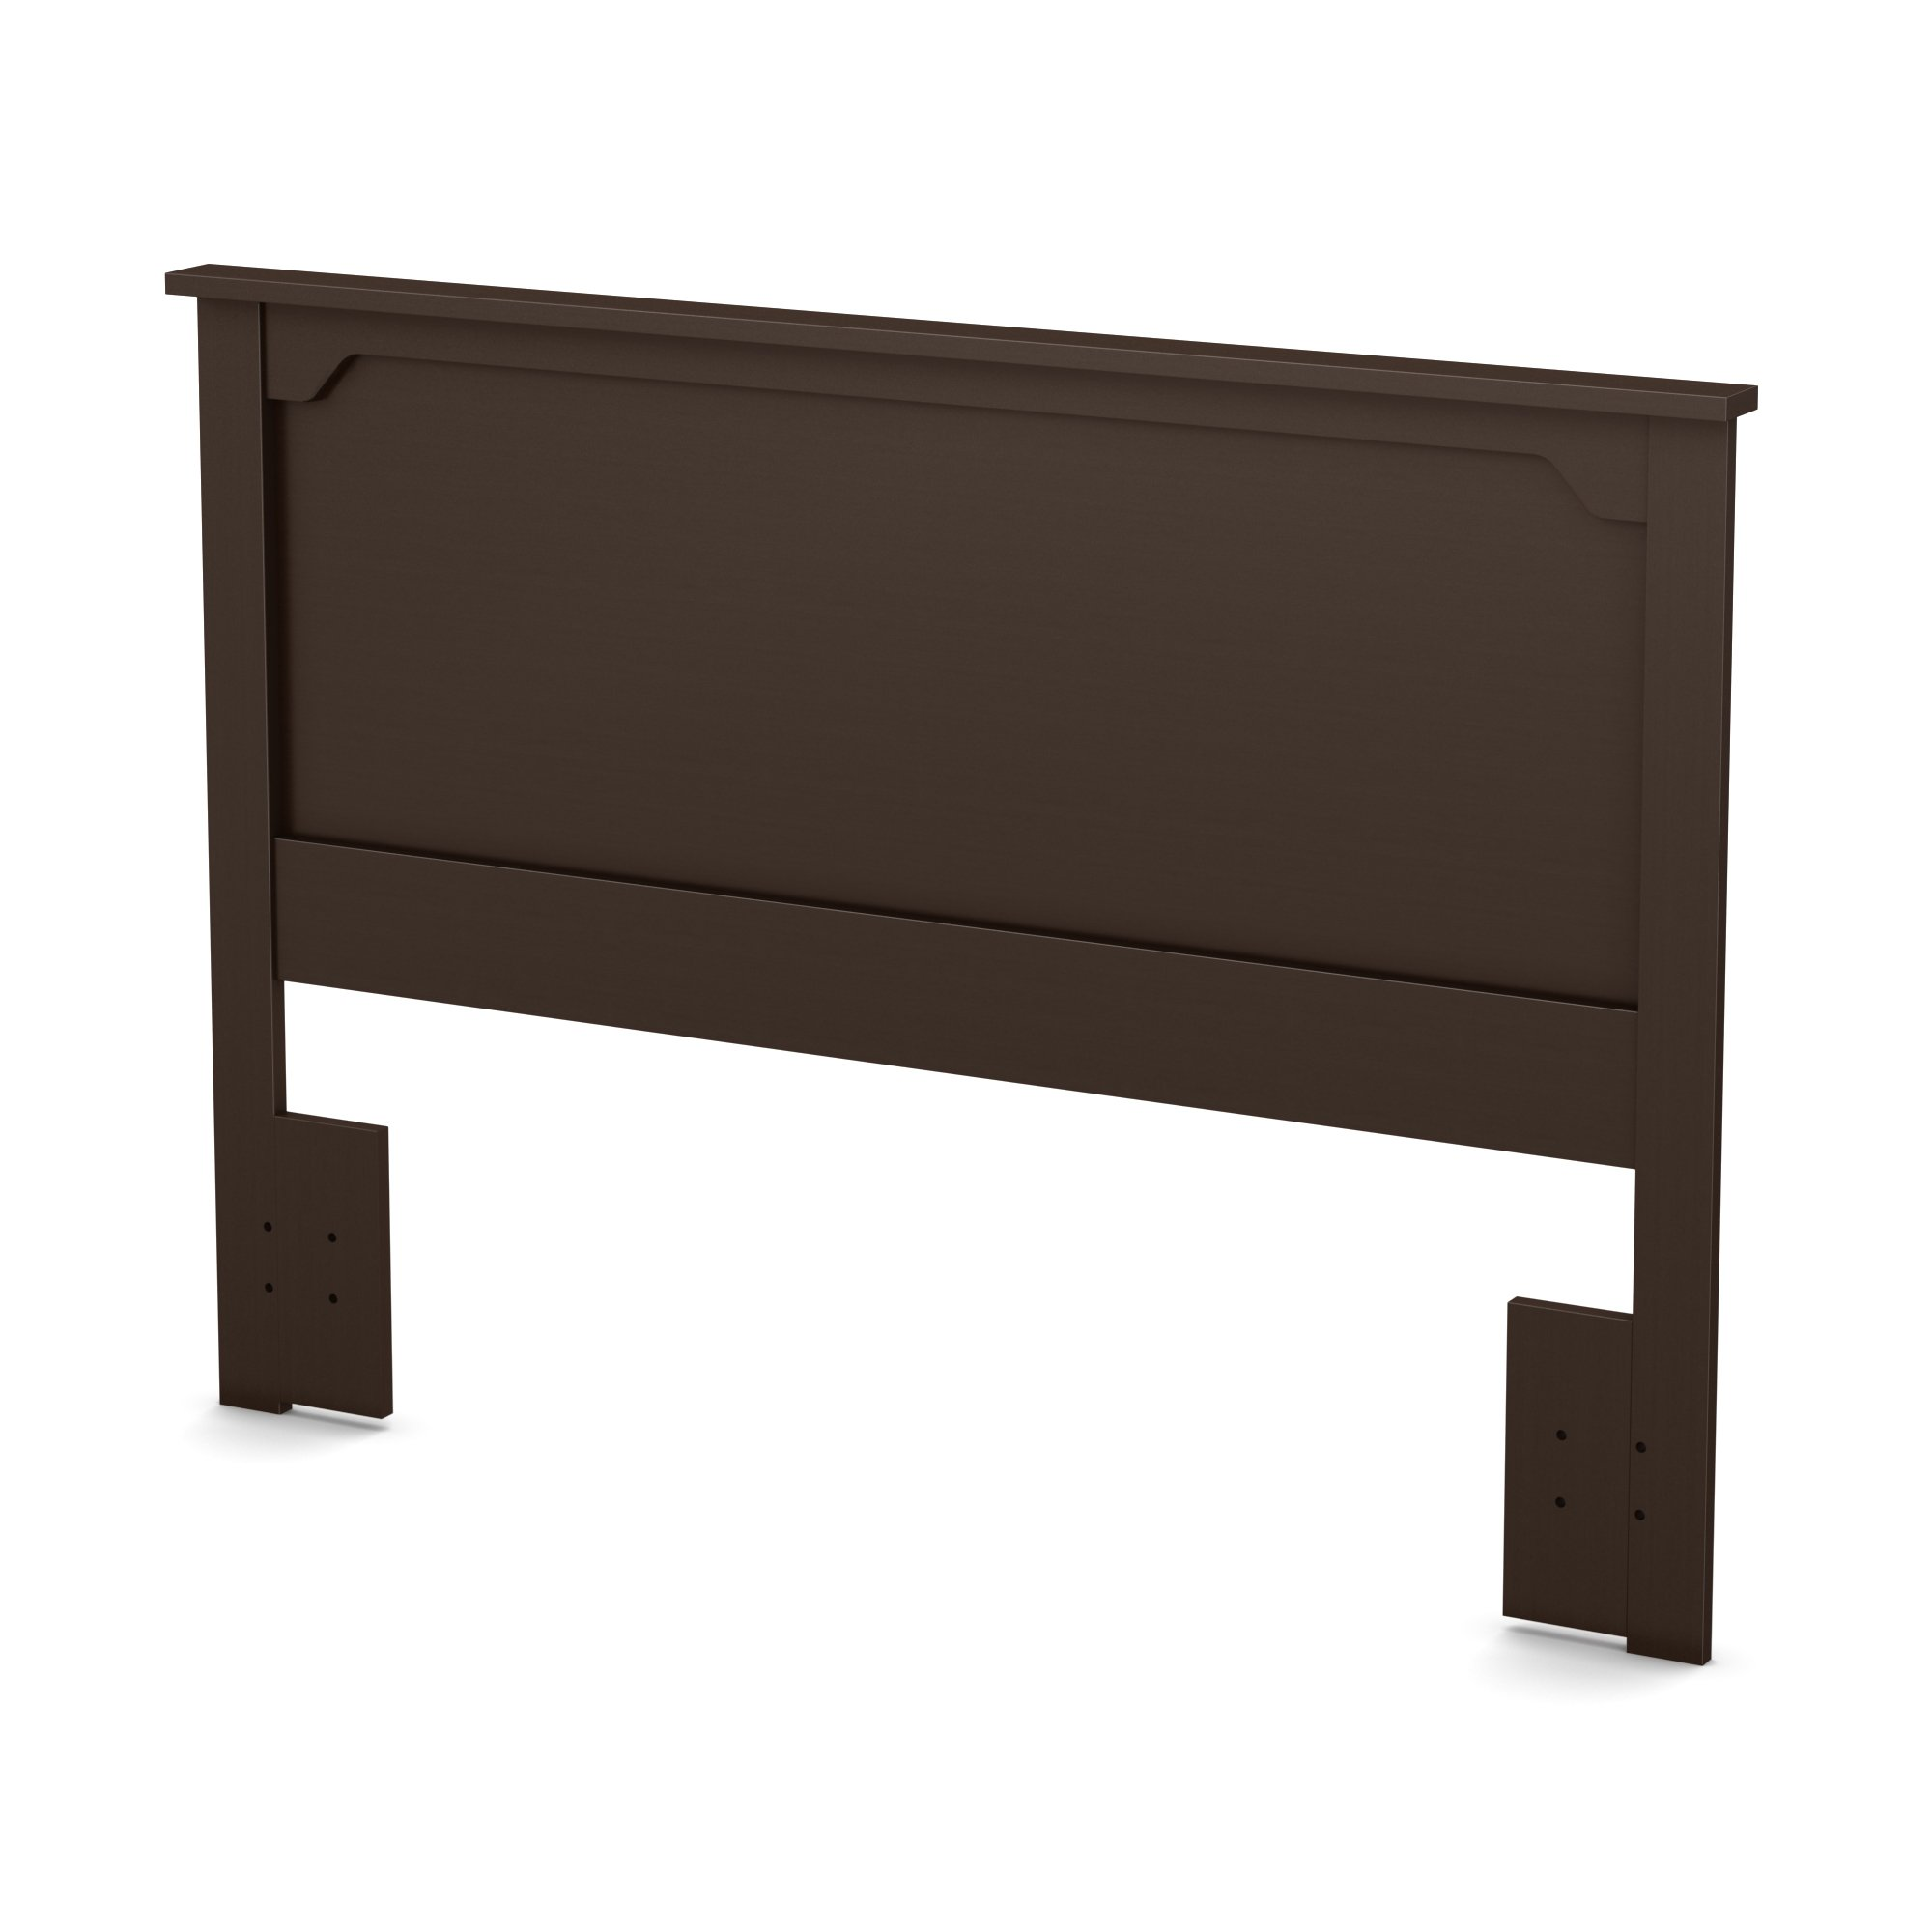 South Shore Fusion Headboard, Full/Queen 54/60-Inch, Chocolate